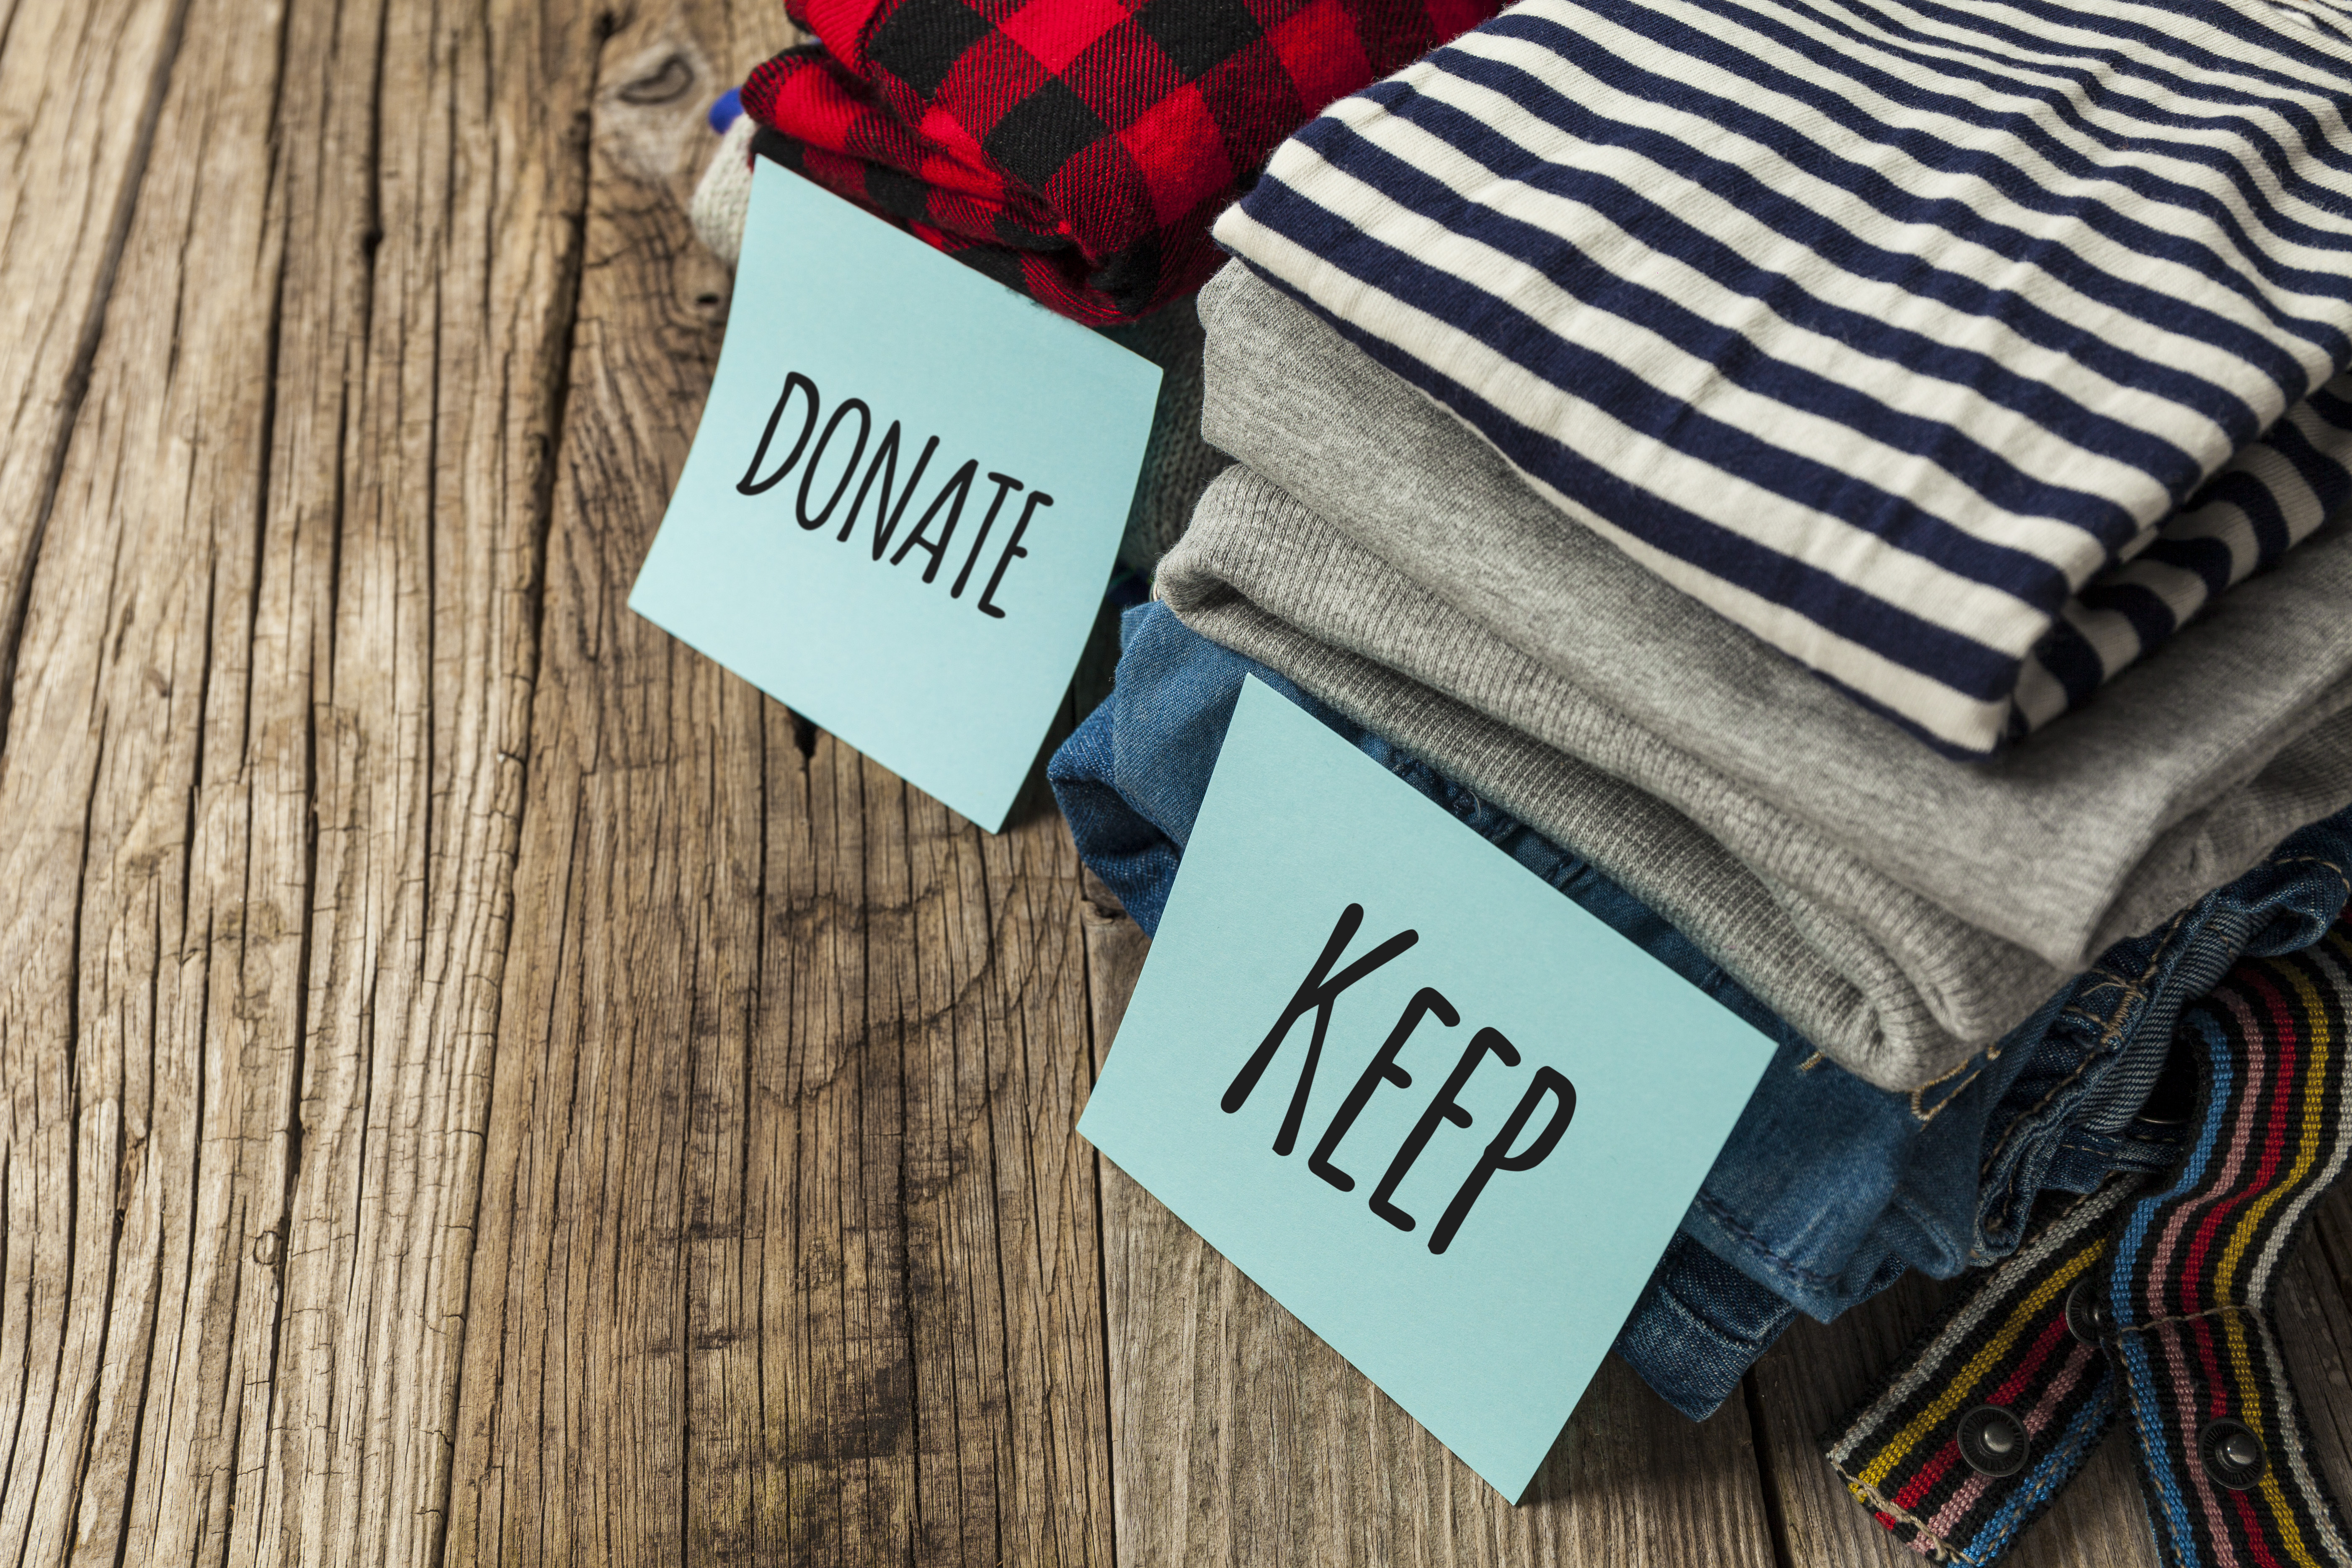 donate_keep_pile_declutter_and_donate_to_charity